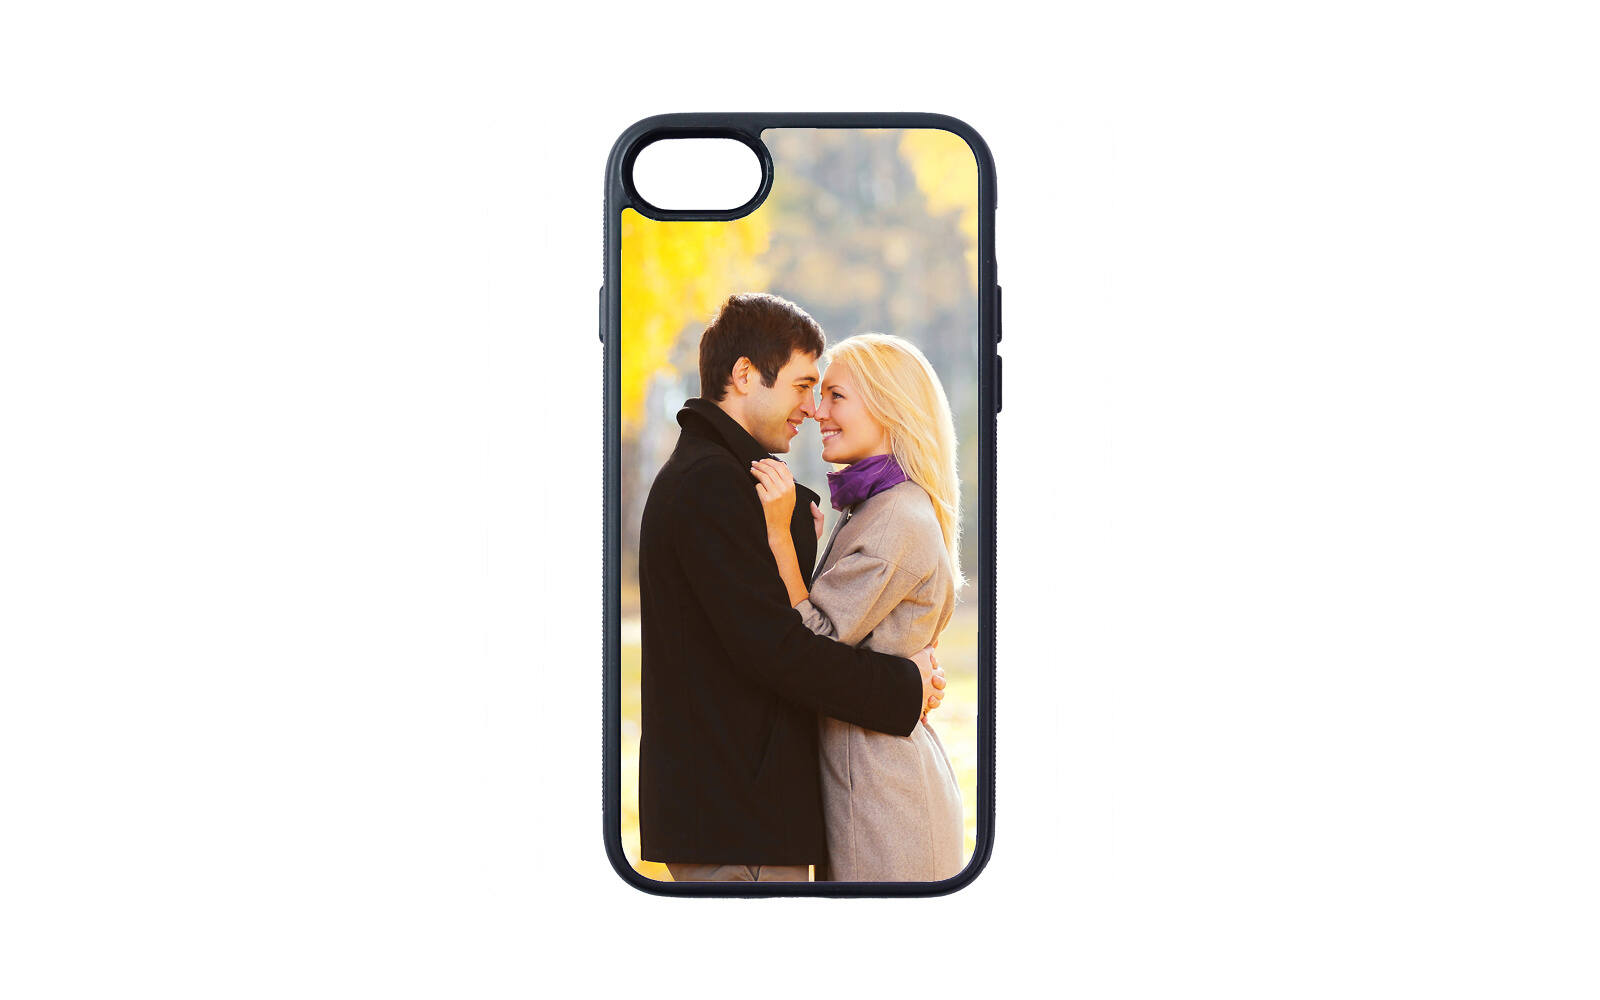 Iphone Case That Prints Out Pictures